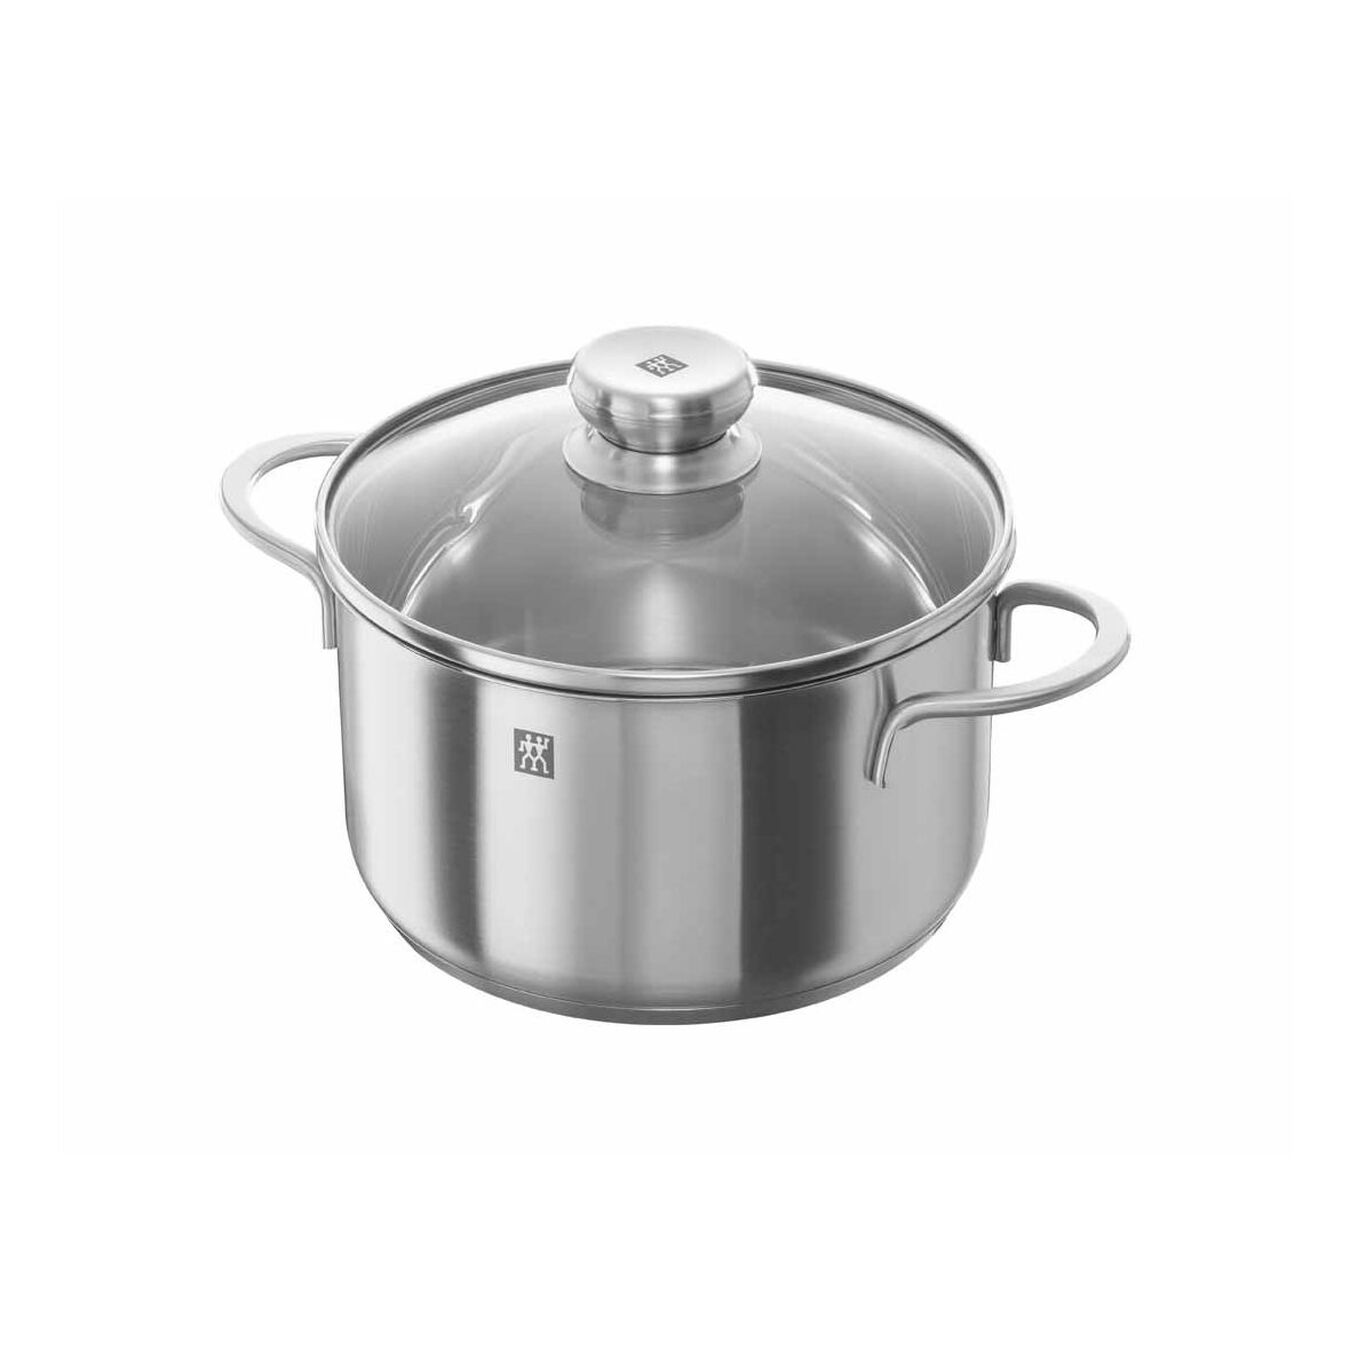 8 Piece 18/10 Stainless Steel Cookware set,,large 2